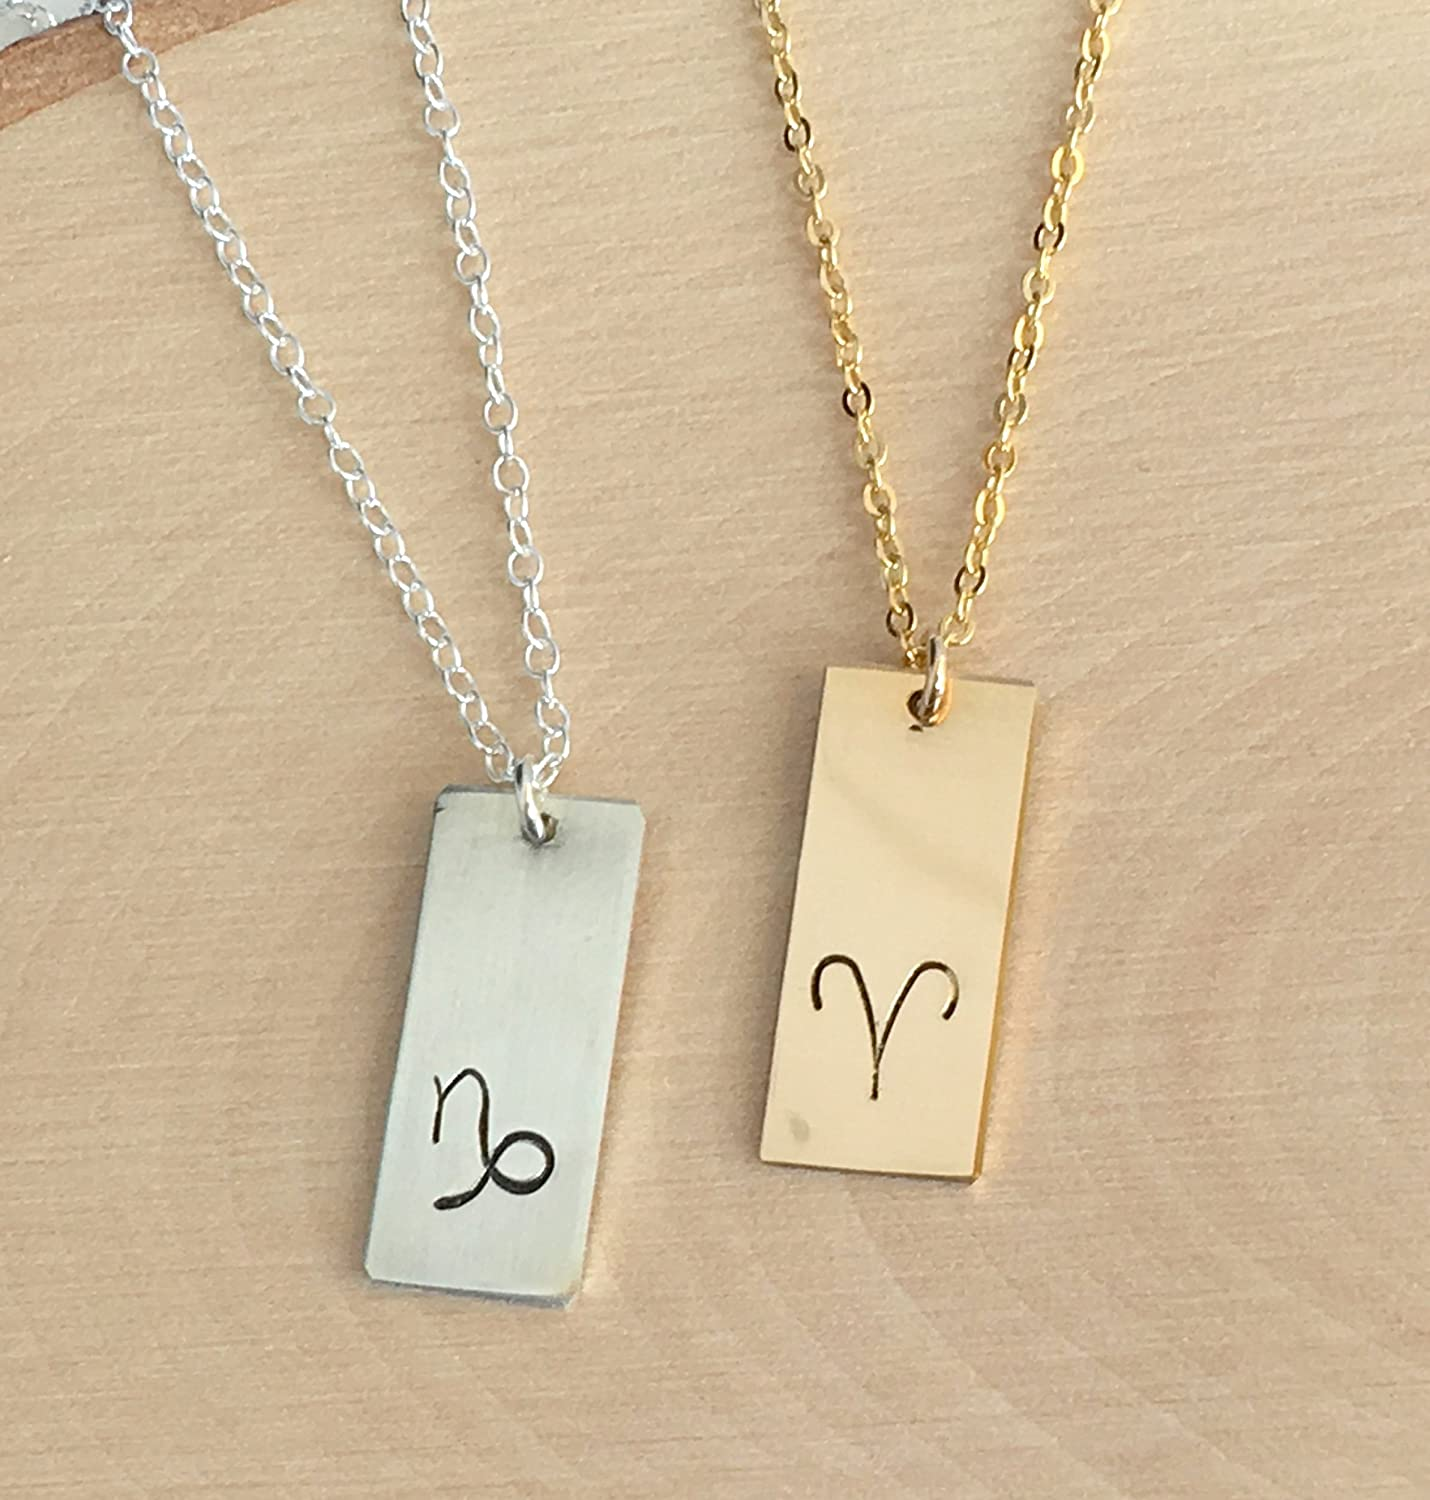 Small Gold-Plated Bronze Pendant and 925 Gold-Plated Chain Libra Gemini Aquarius Alchemical Element Gold Alchemy Air Sign